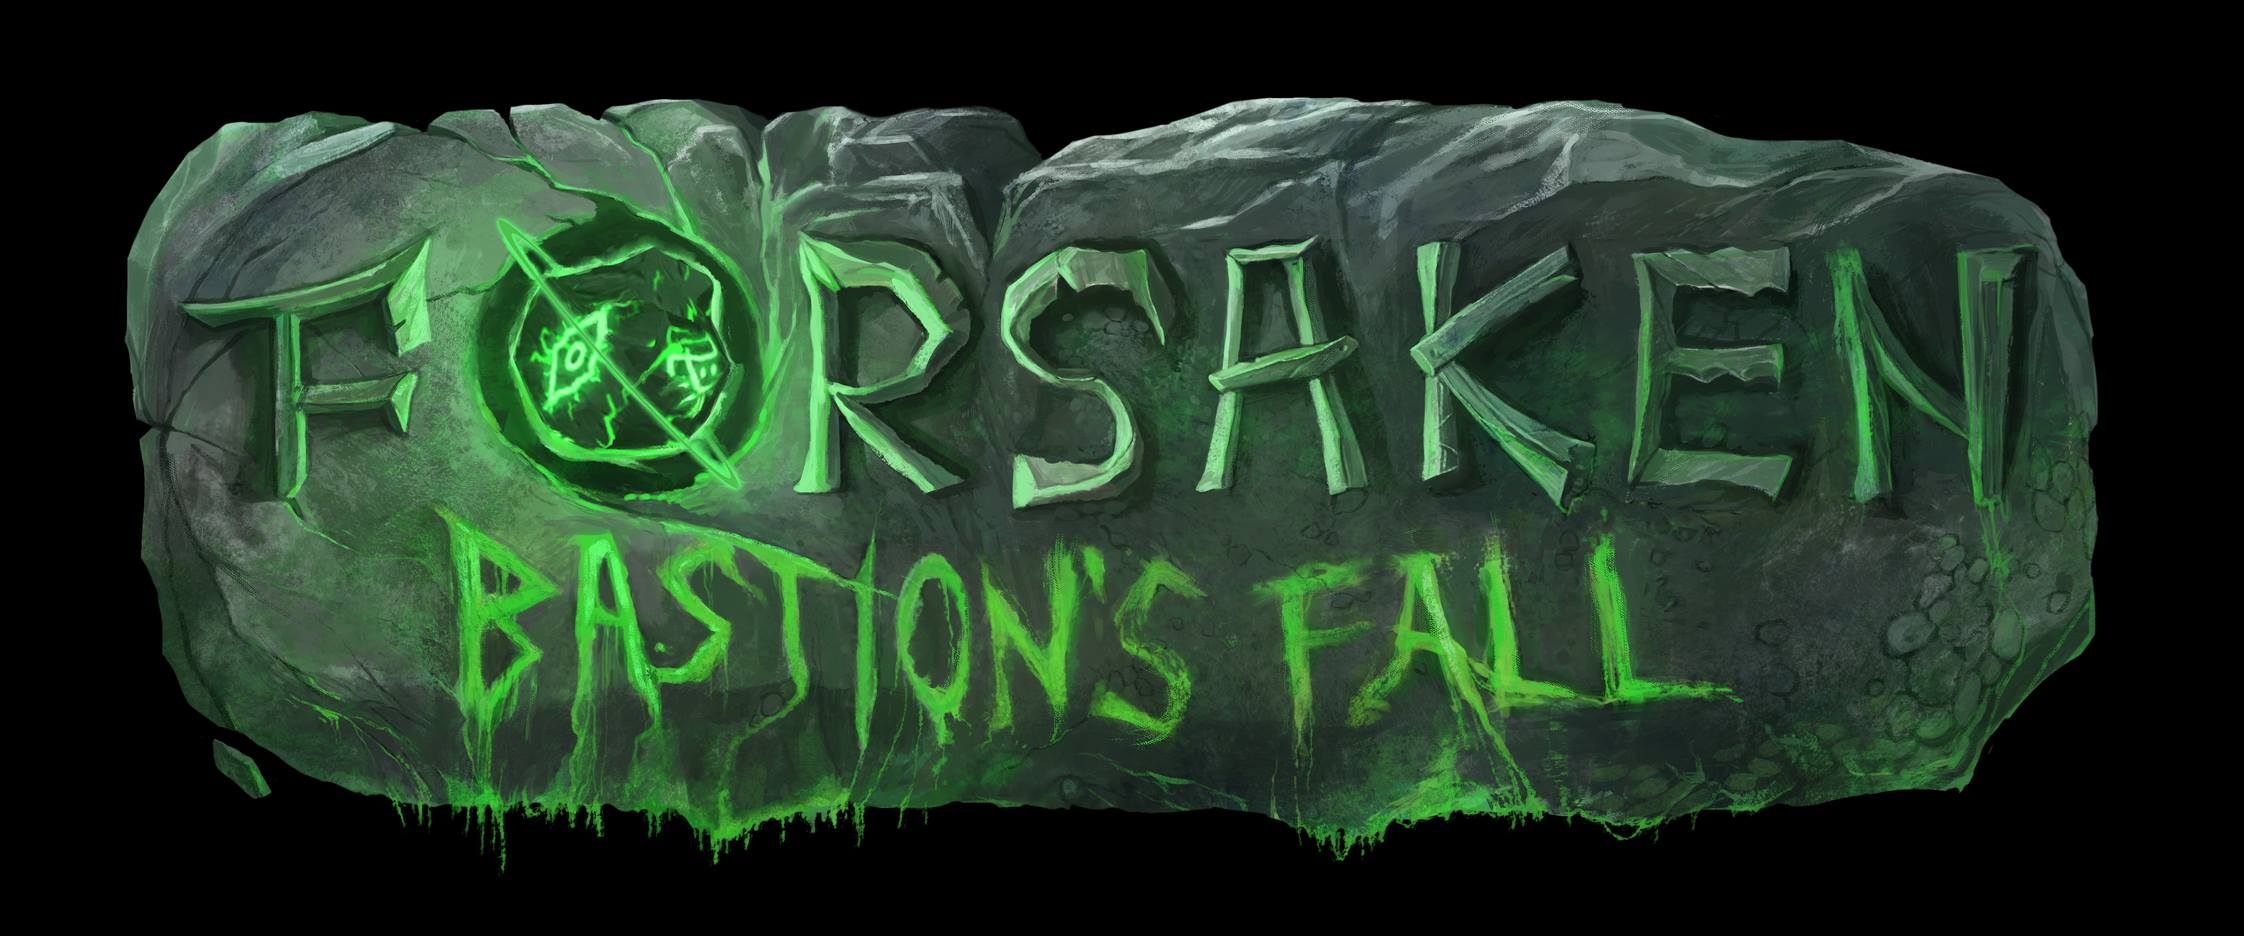 Forsaken Bastion's Fall